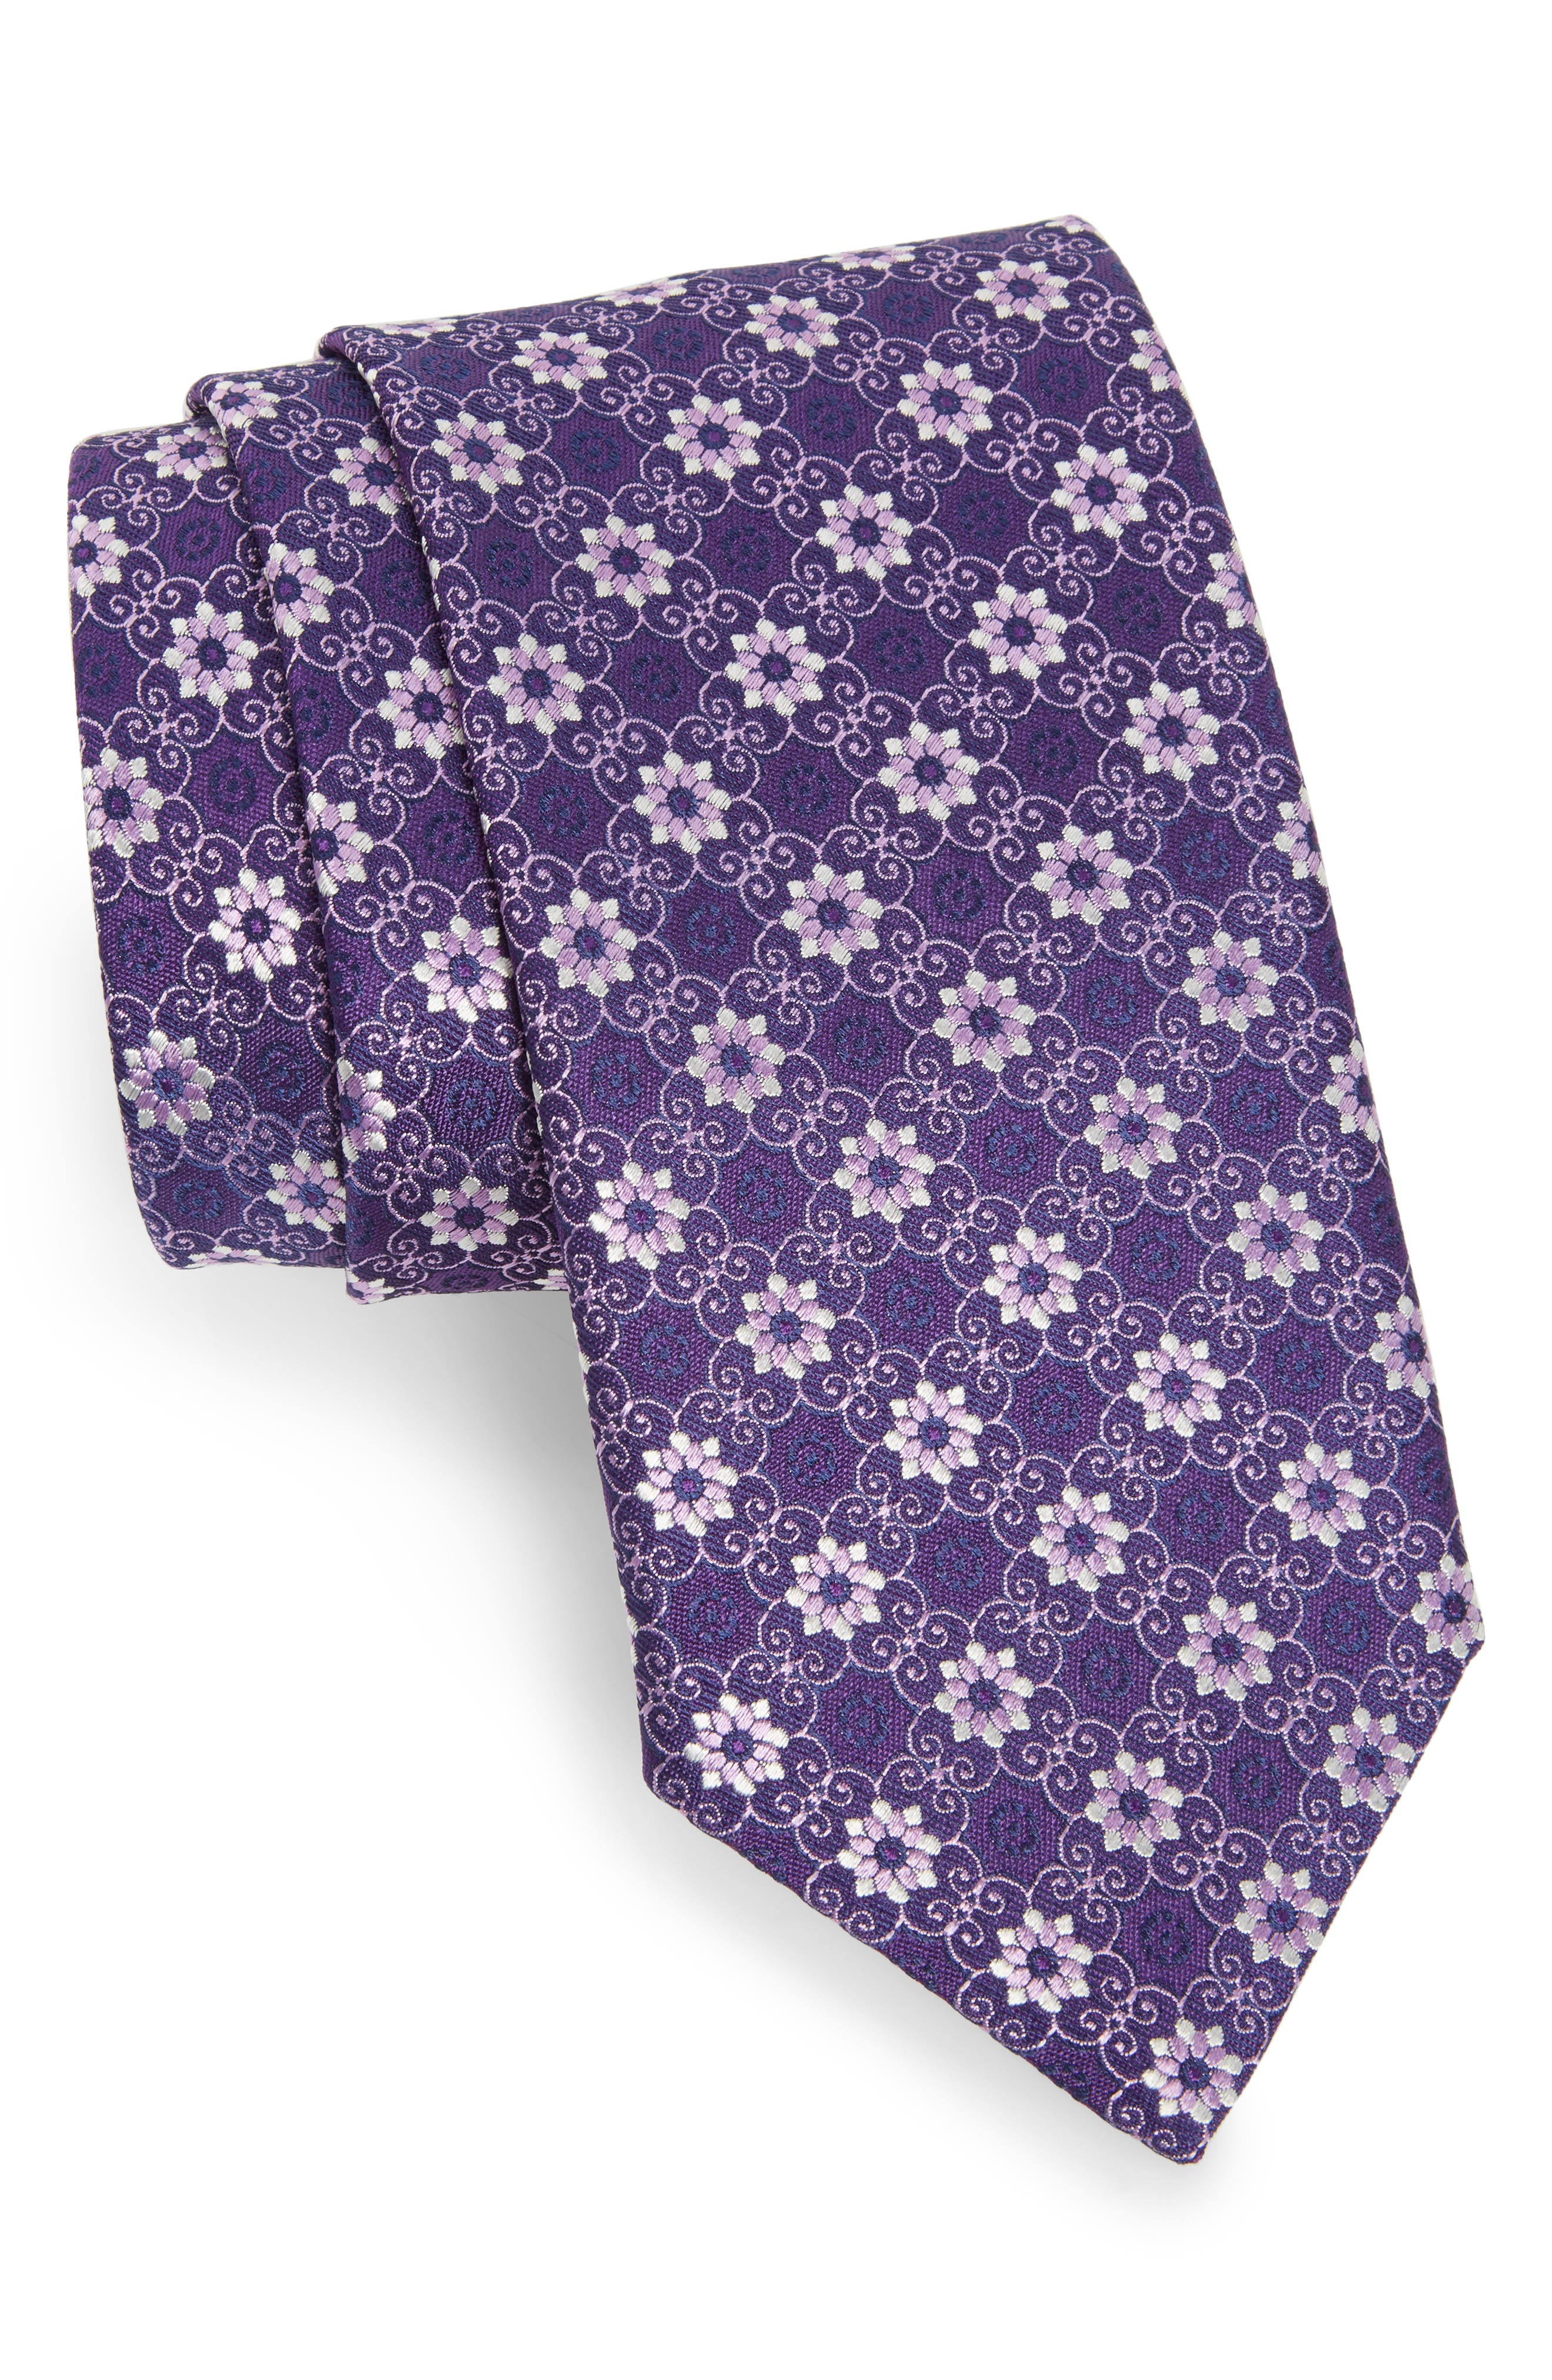 Alternate Image 1 Selected - Canali Floral Silk Tie